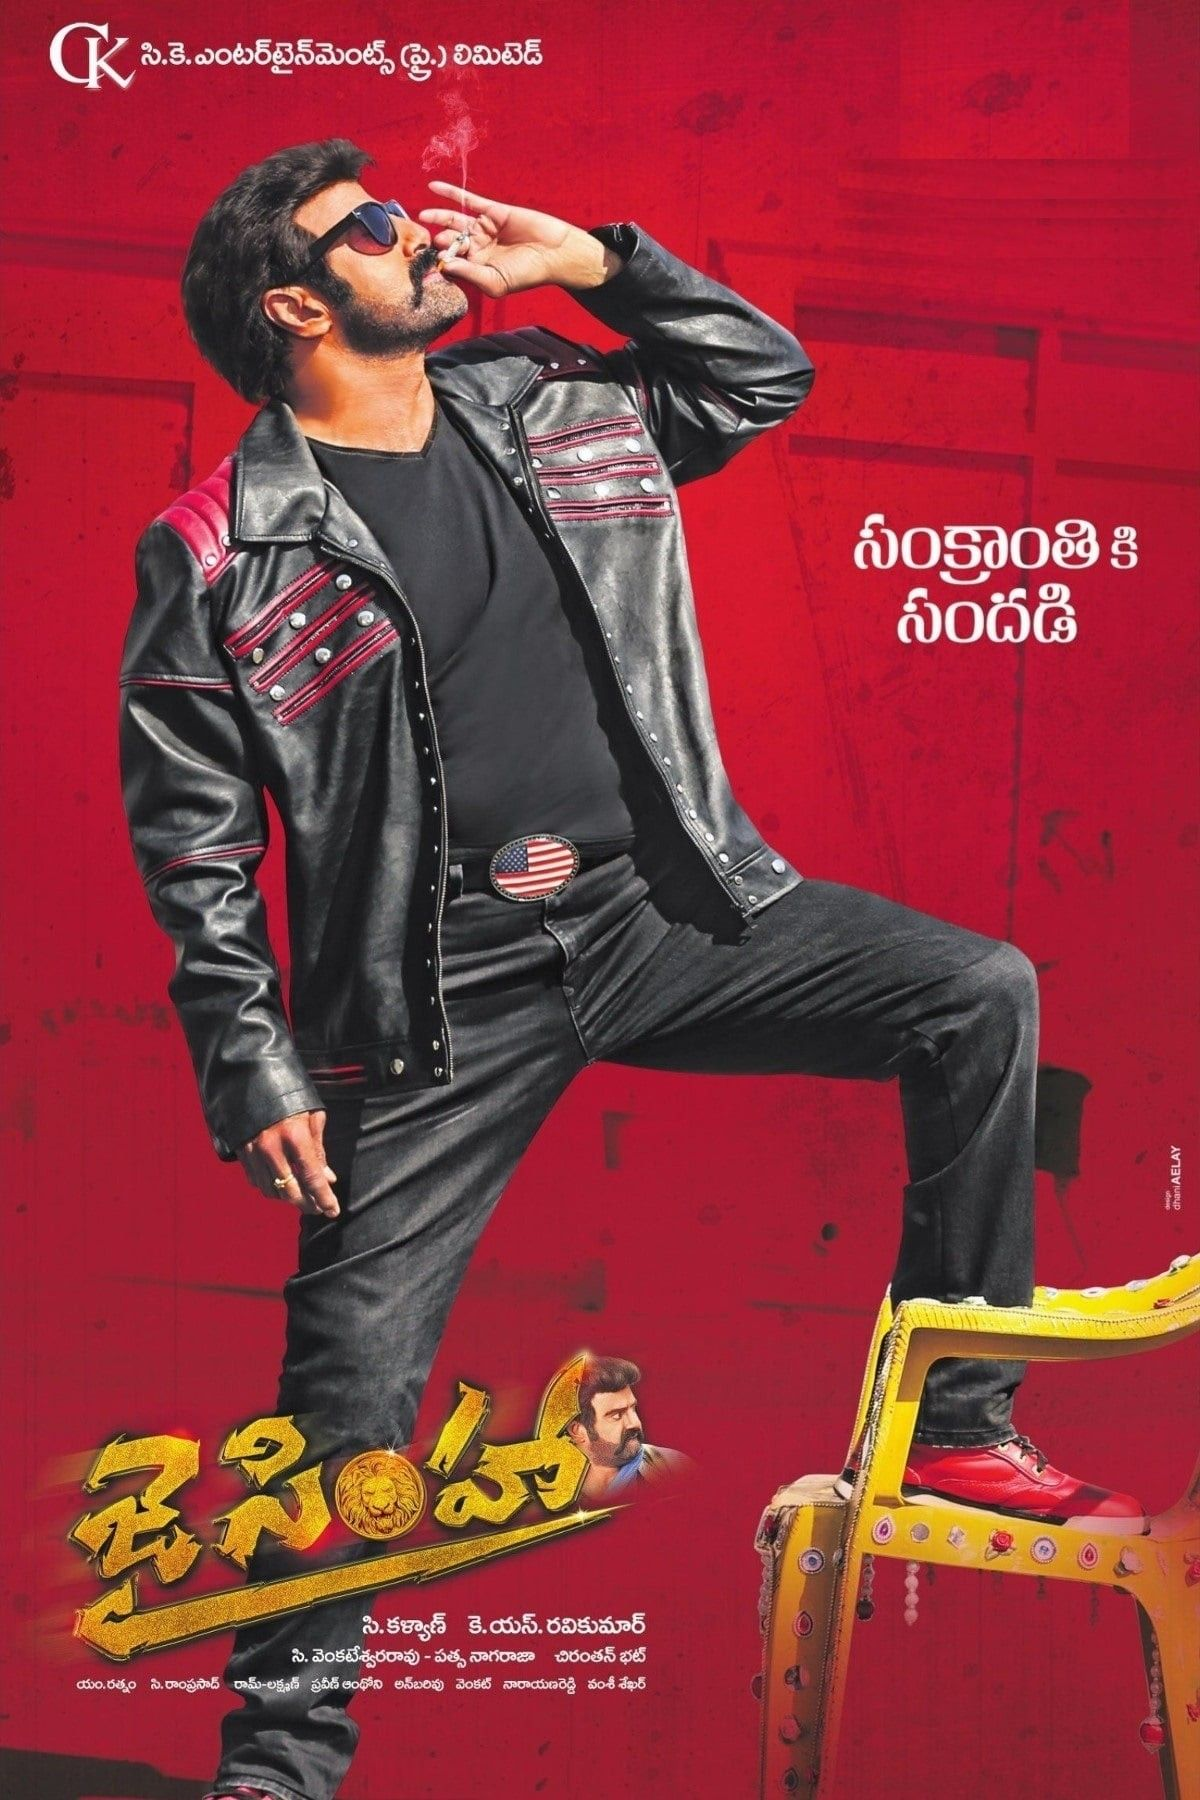 Download Jai Simha 2019 Tamil Movie in Hindi (With images